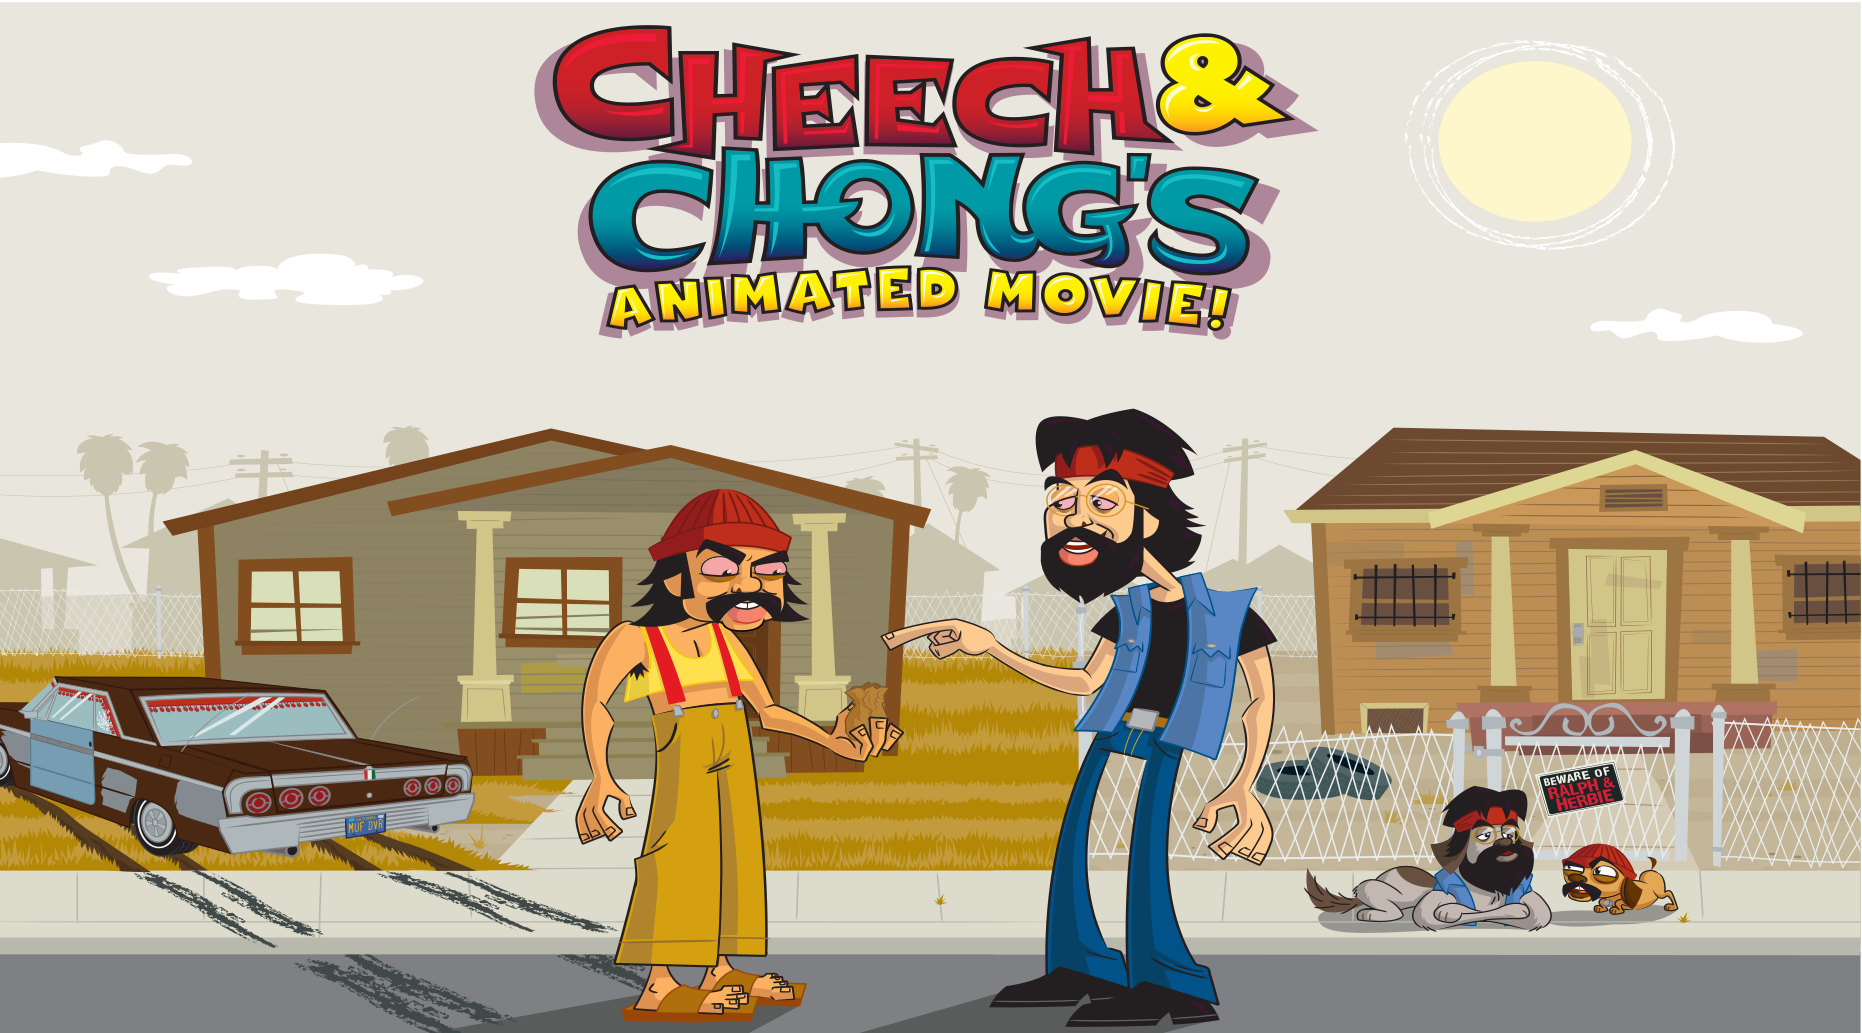 Best images about Cheech and Chong on Pinterest  Comedy duos 1862x1033